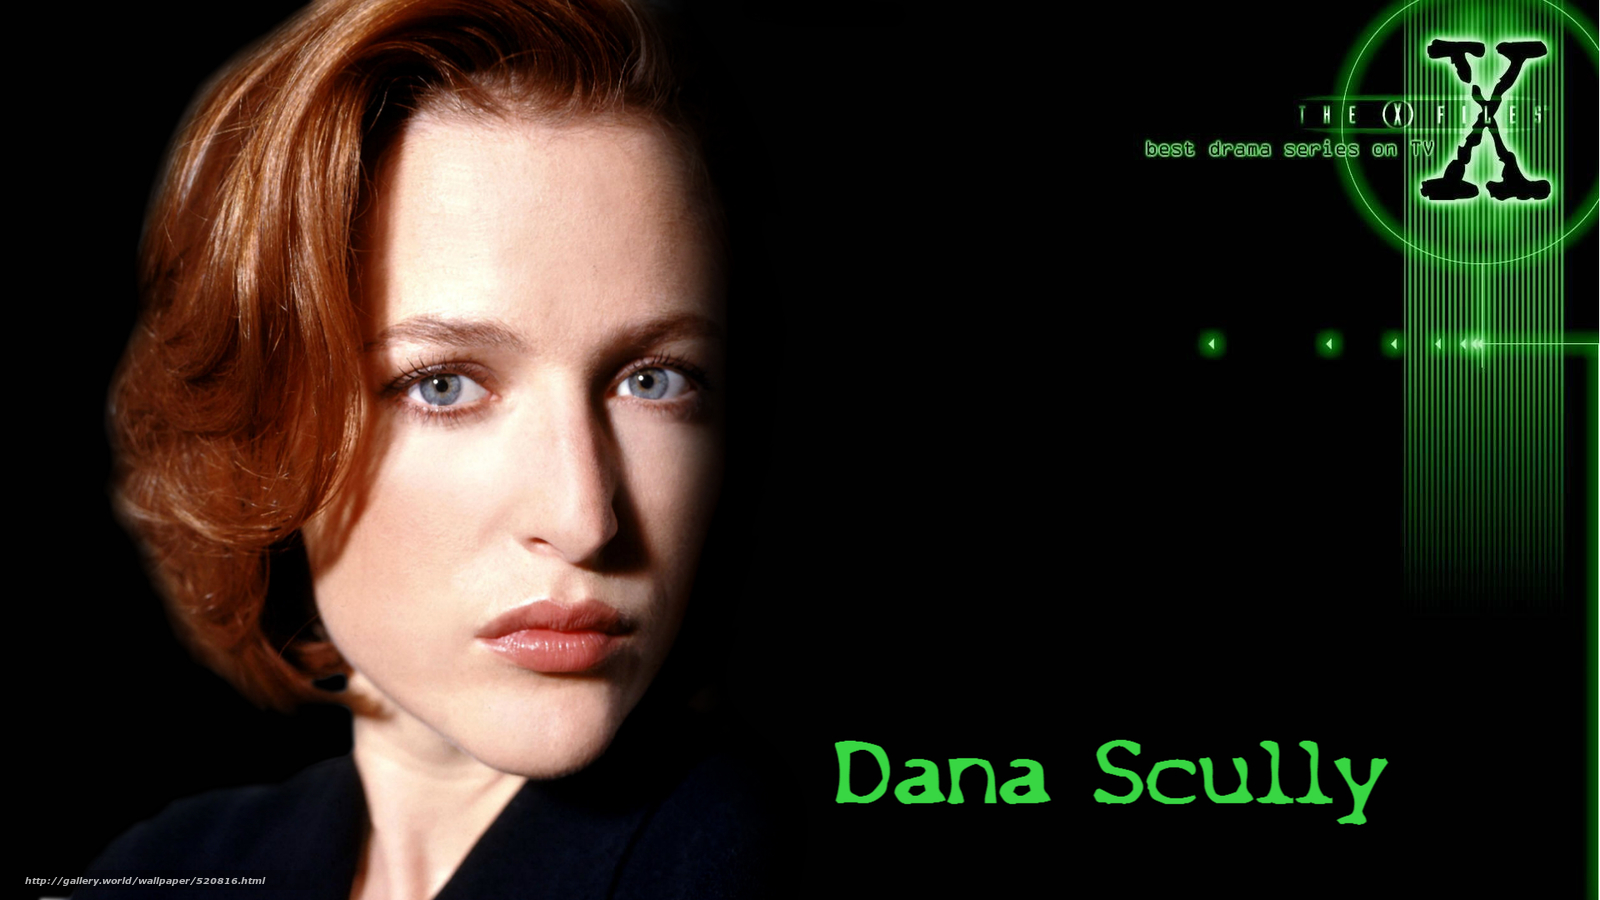 Download wallpaper The X Files the x files series Dana Scully 1600x900